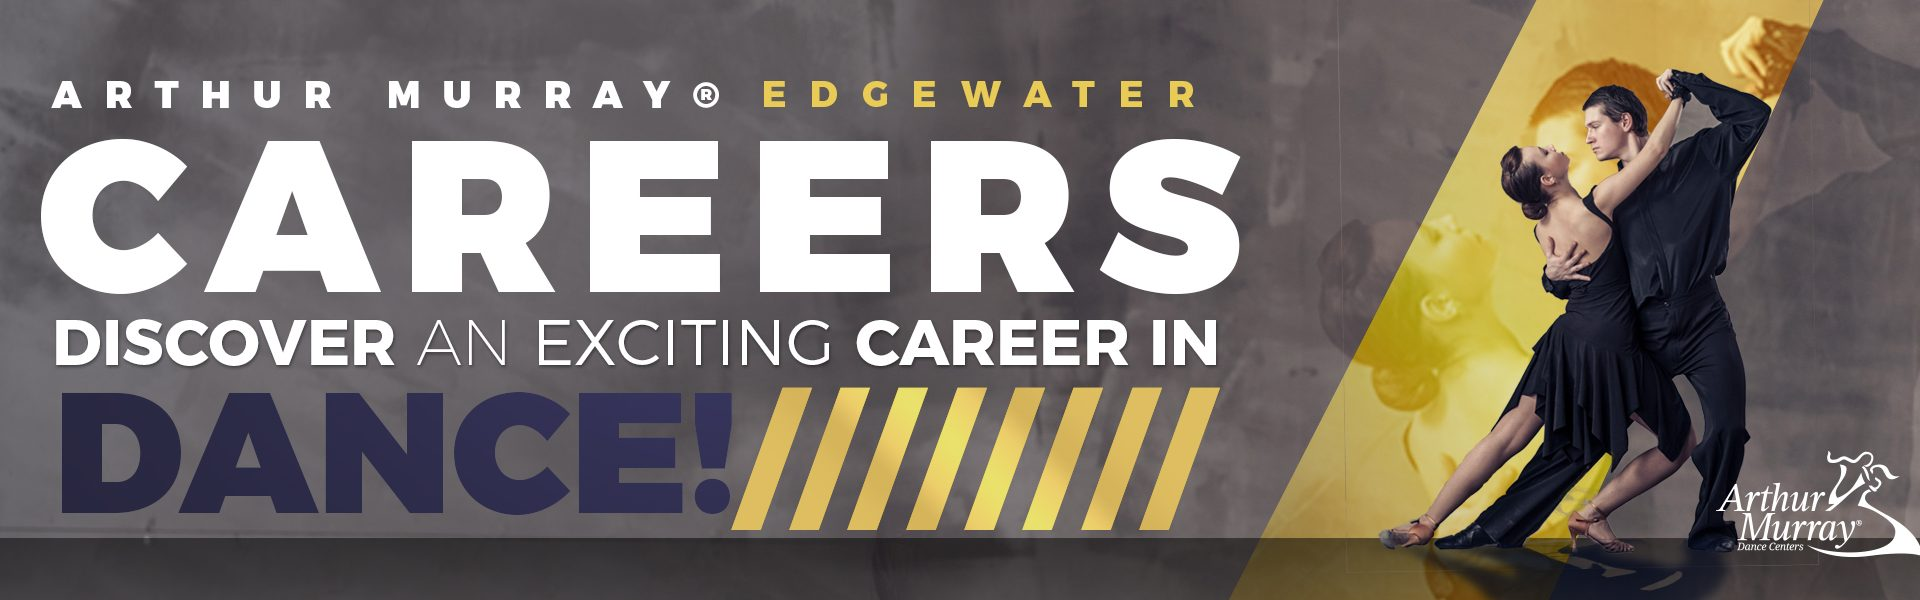 Arthur Murray Edgewater Careers